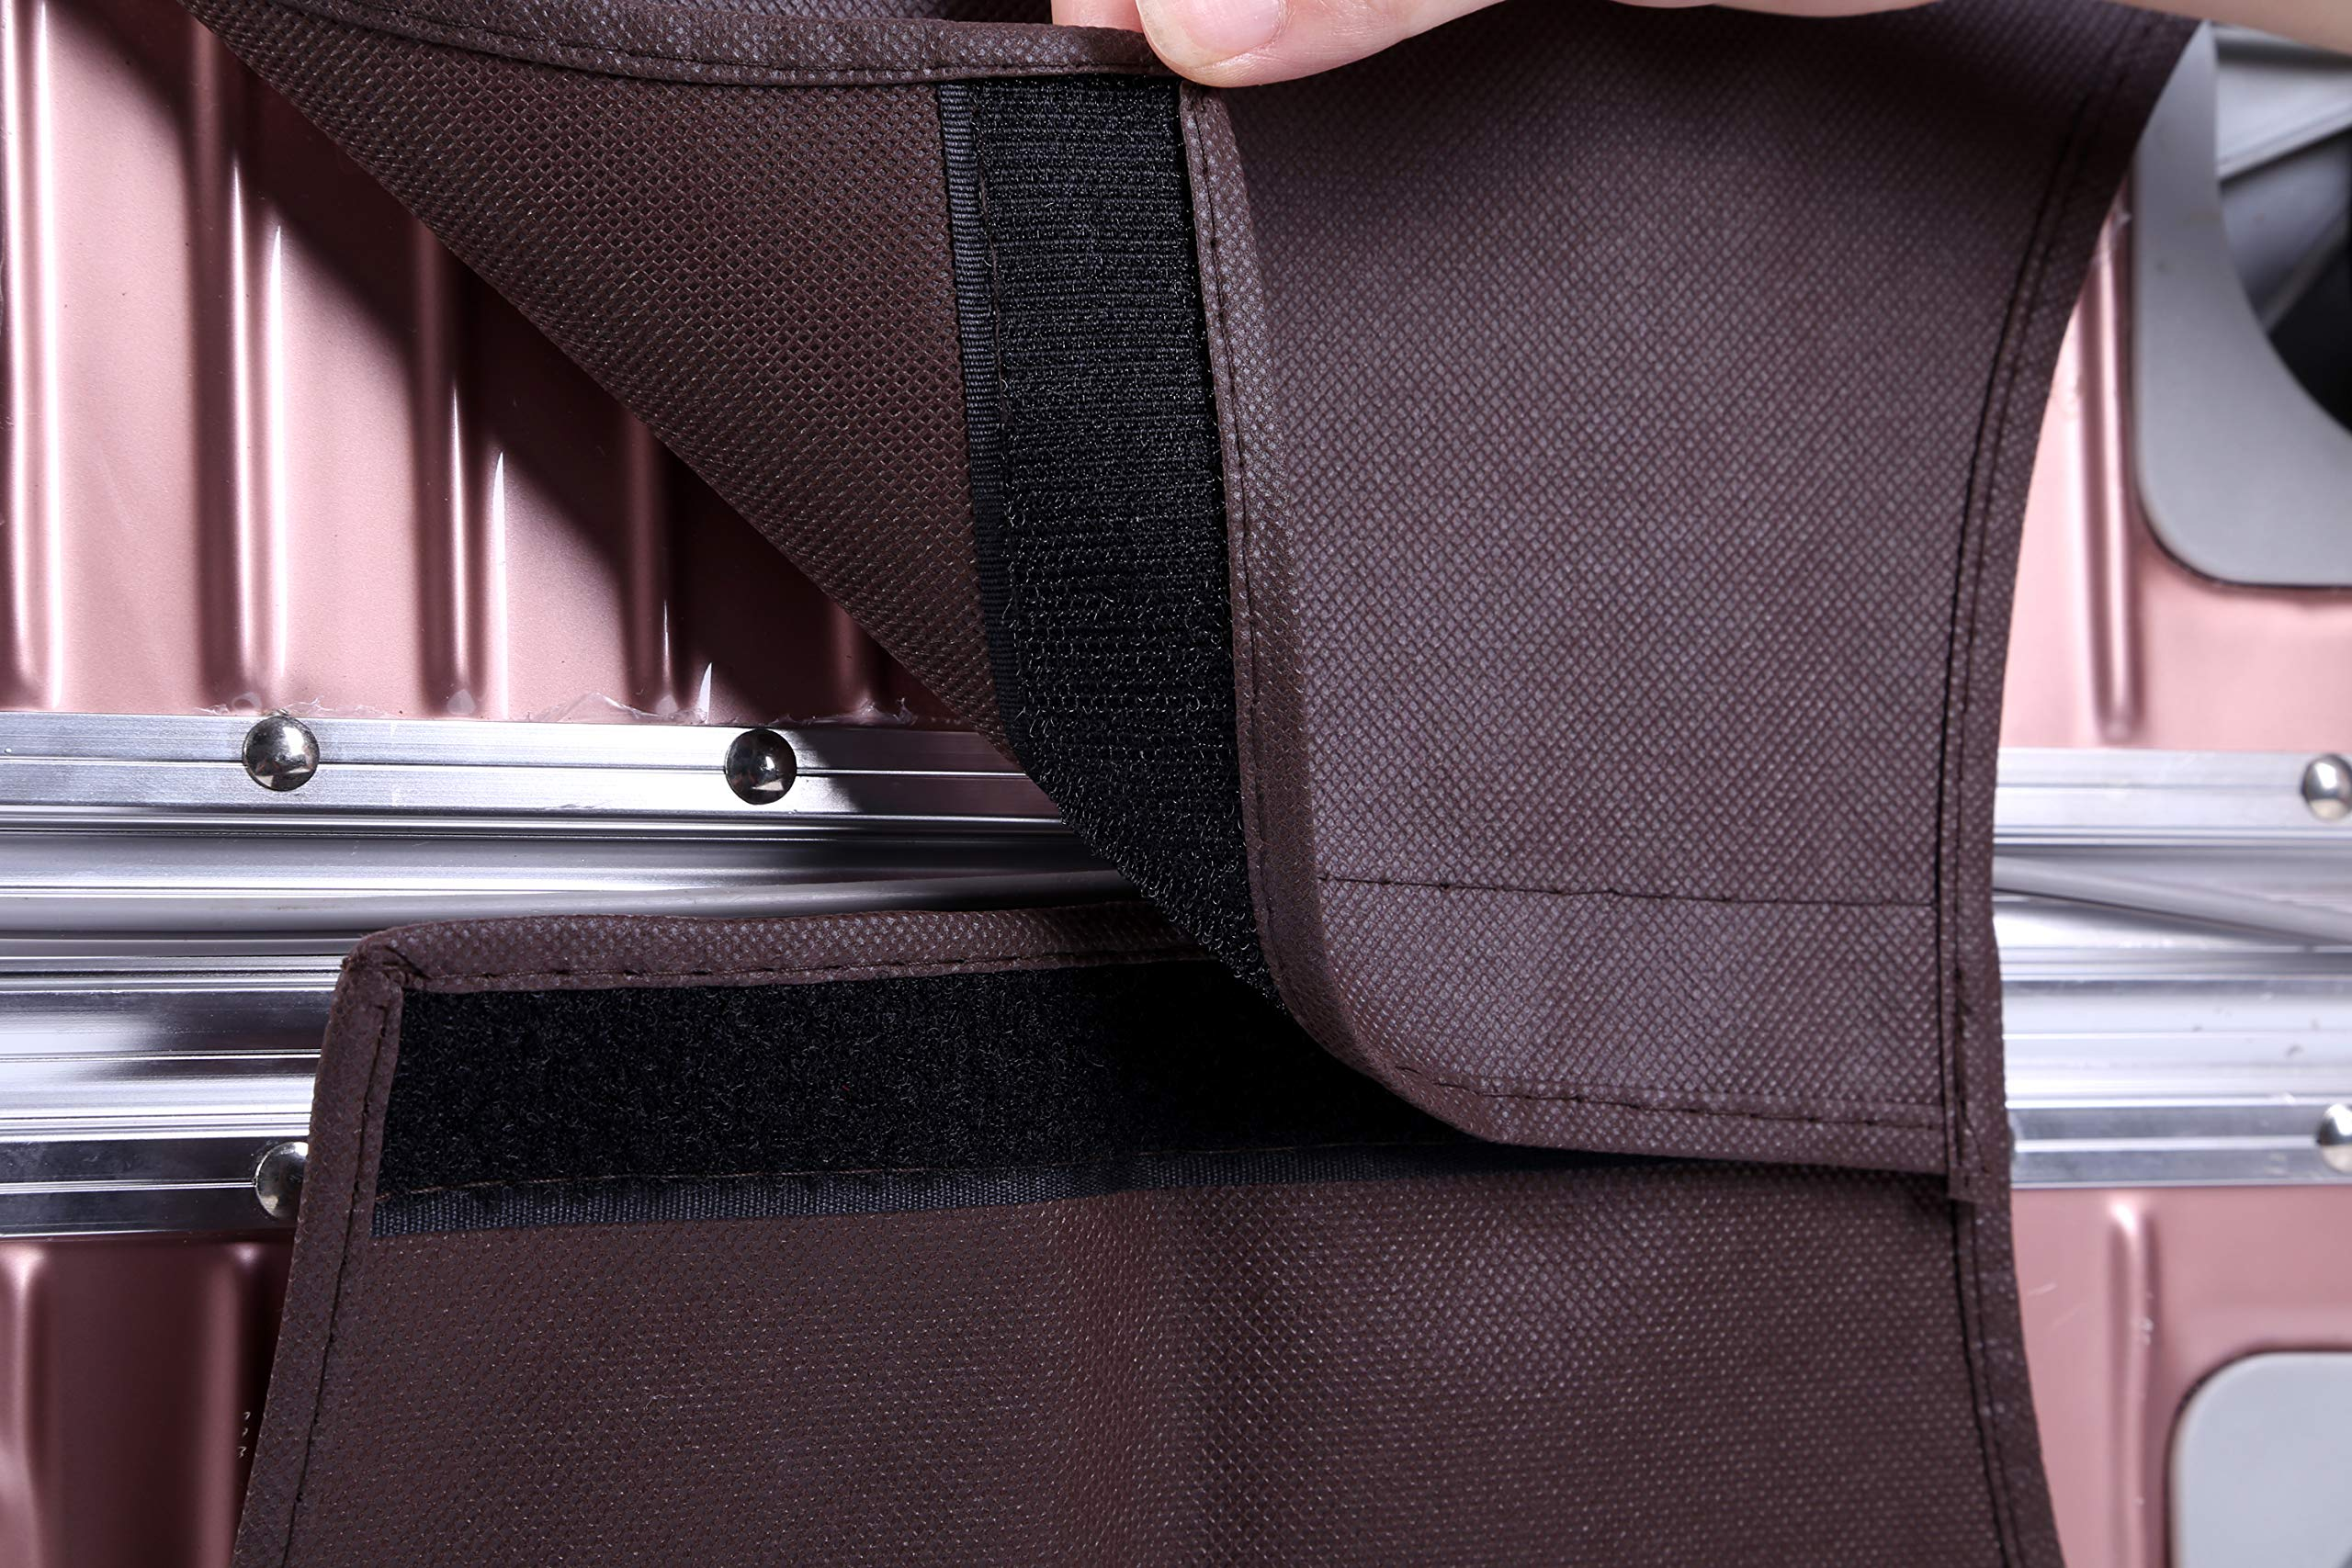 Non-elastic Suitcase Cover Waterproof Luggage Cover,3 Colors,Fits 24 Inch,Brown by CXGIAE (Image #5)